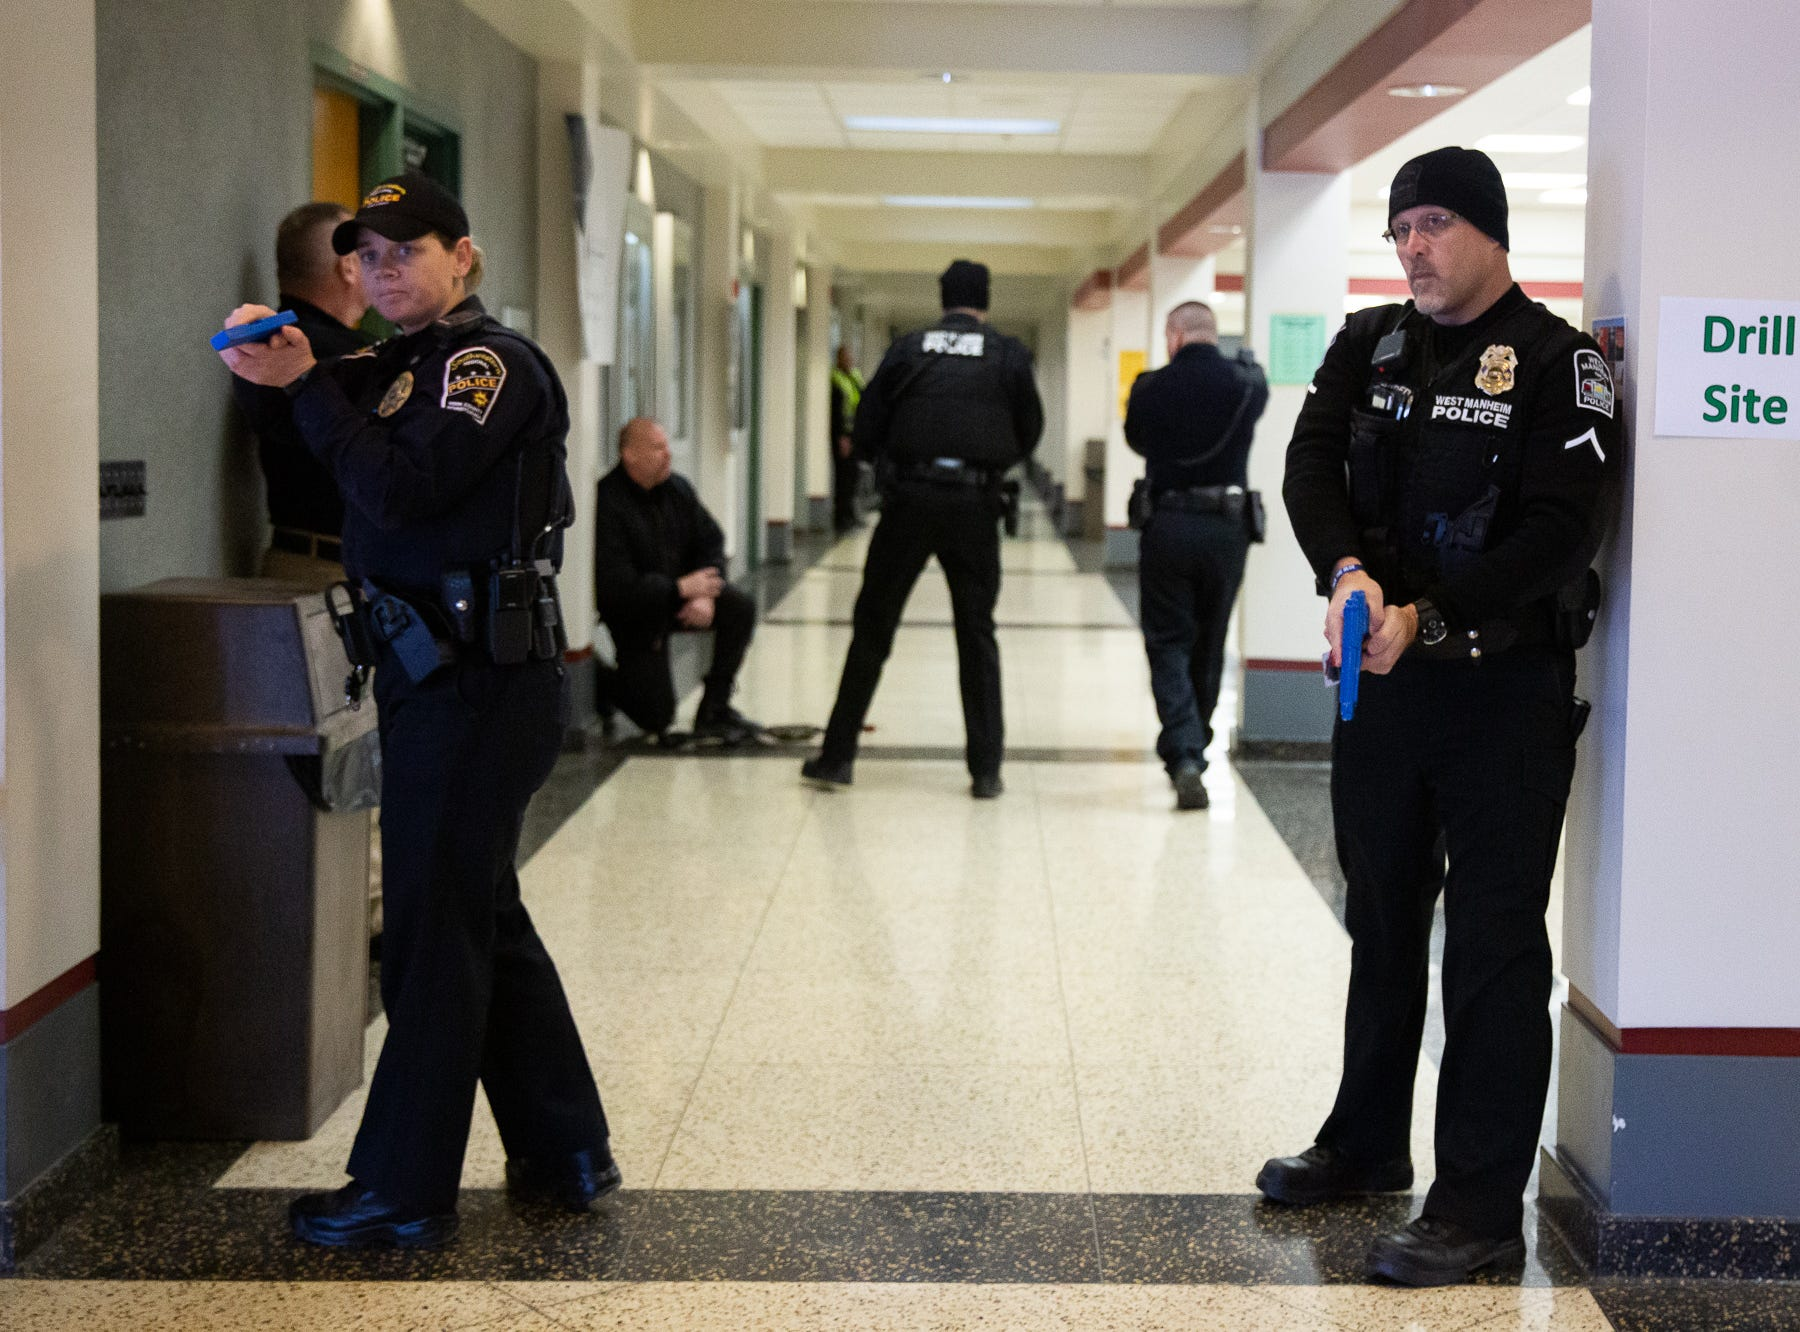 Police officers clear hallways while taking part in an active shooter drill at South Western High School, Monday, Jan. 21, 2019, in Penn Township. The drill simulated multiple scenarios involving an active shooter, allowing school security and local law enforcement agencies a hands-on opportunity to drill on engaging an active shooter while also giving school staff experience with how real world scenarios could unfold.